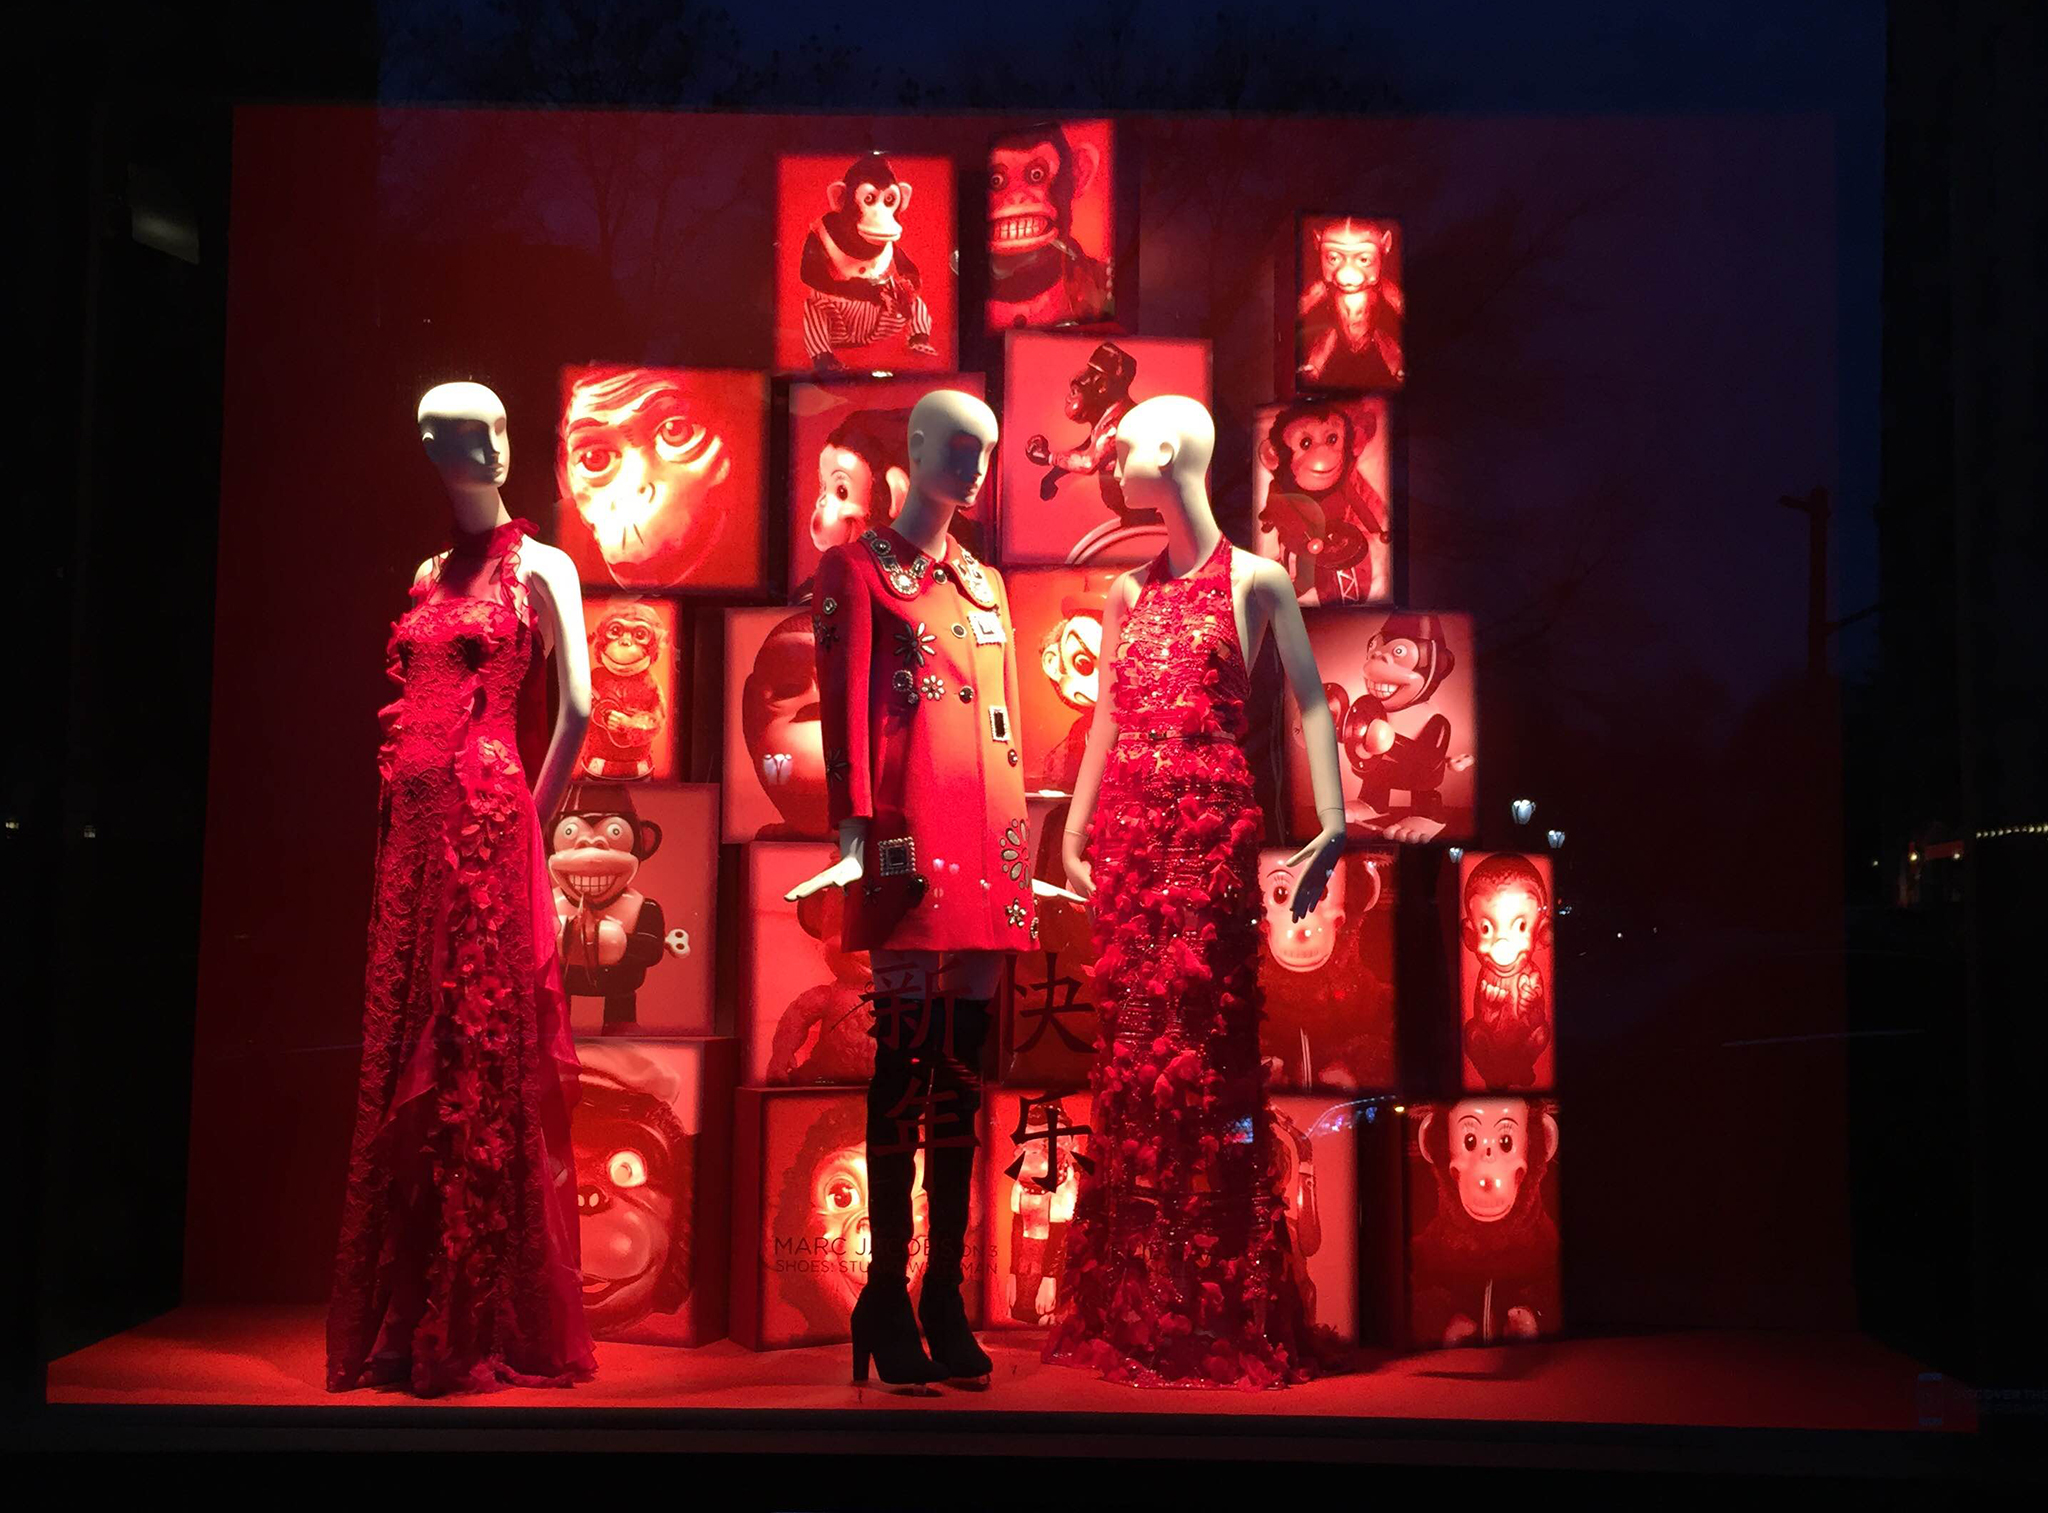 Bergdorf Goodman S Window Displays New York February